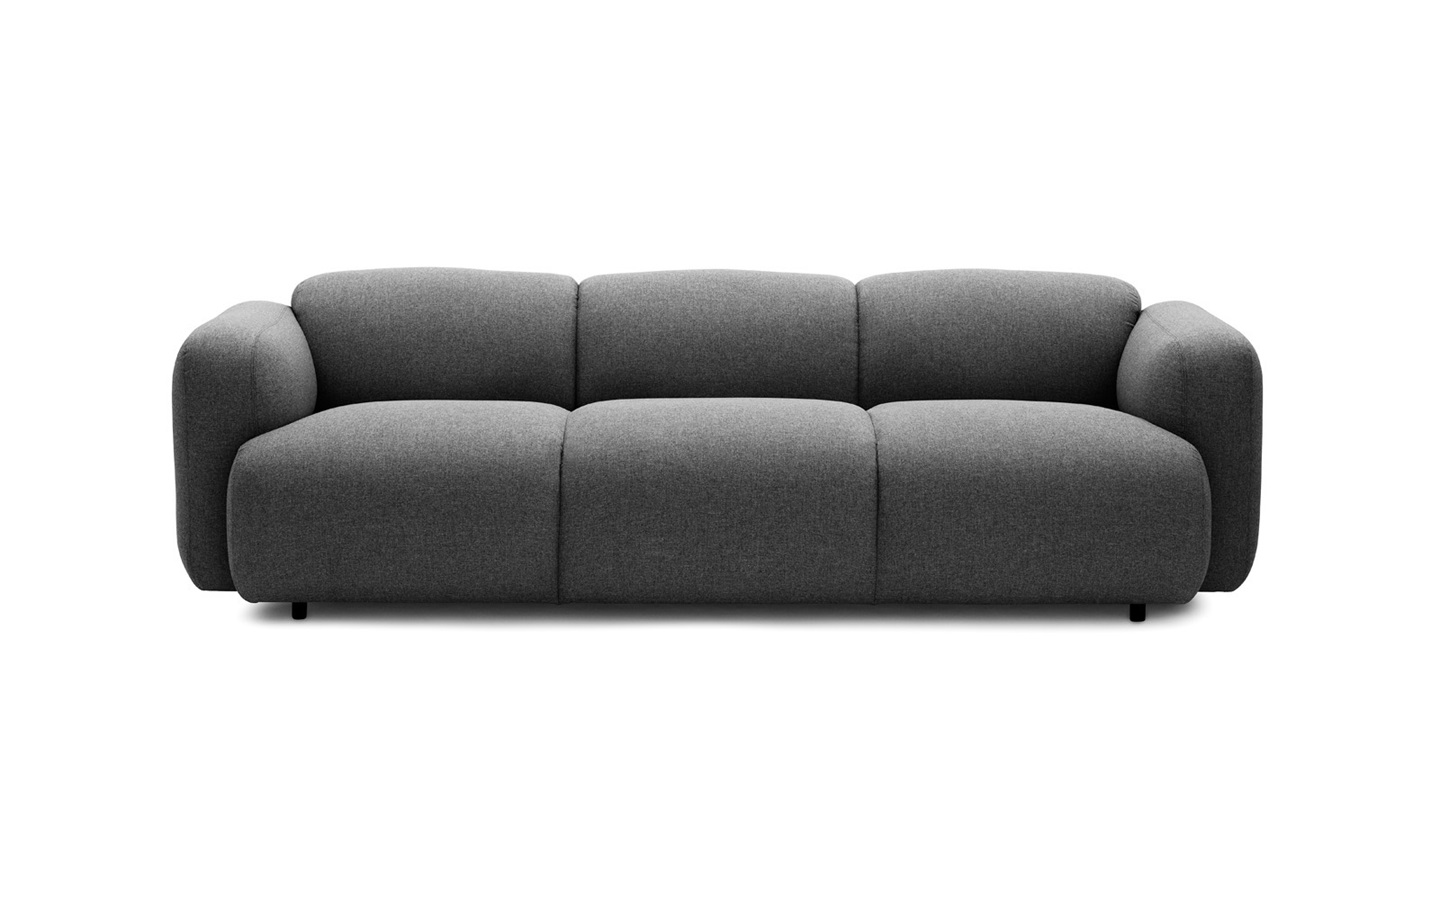 Curvy Scandinavian Design With An Edge | Swell Sofa 3 Seater